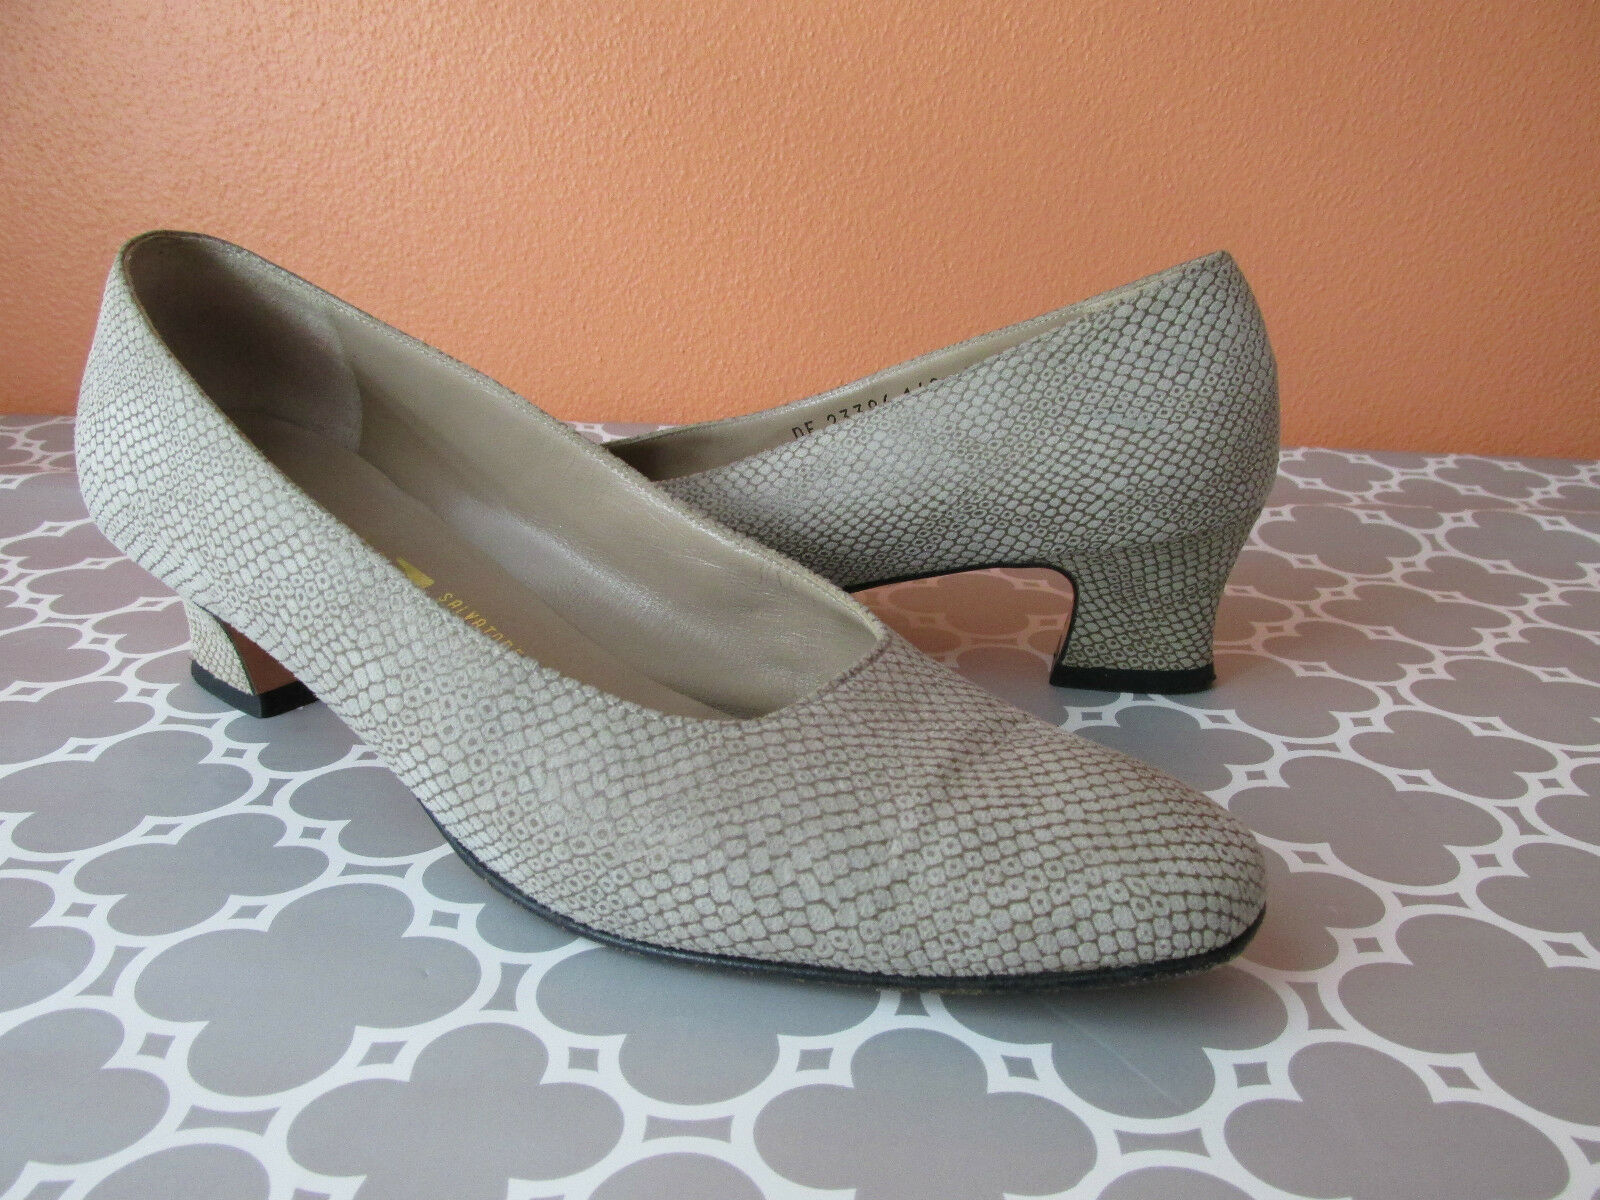 Salvatore Ferragamo Size Low 7.5N Tan Reptile Print Low Size Heel Suede Pump Shoes 57fb1d